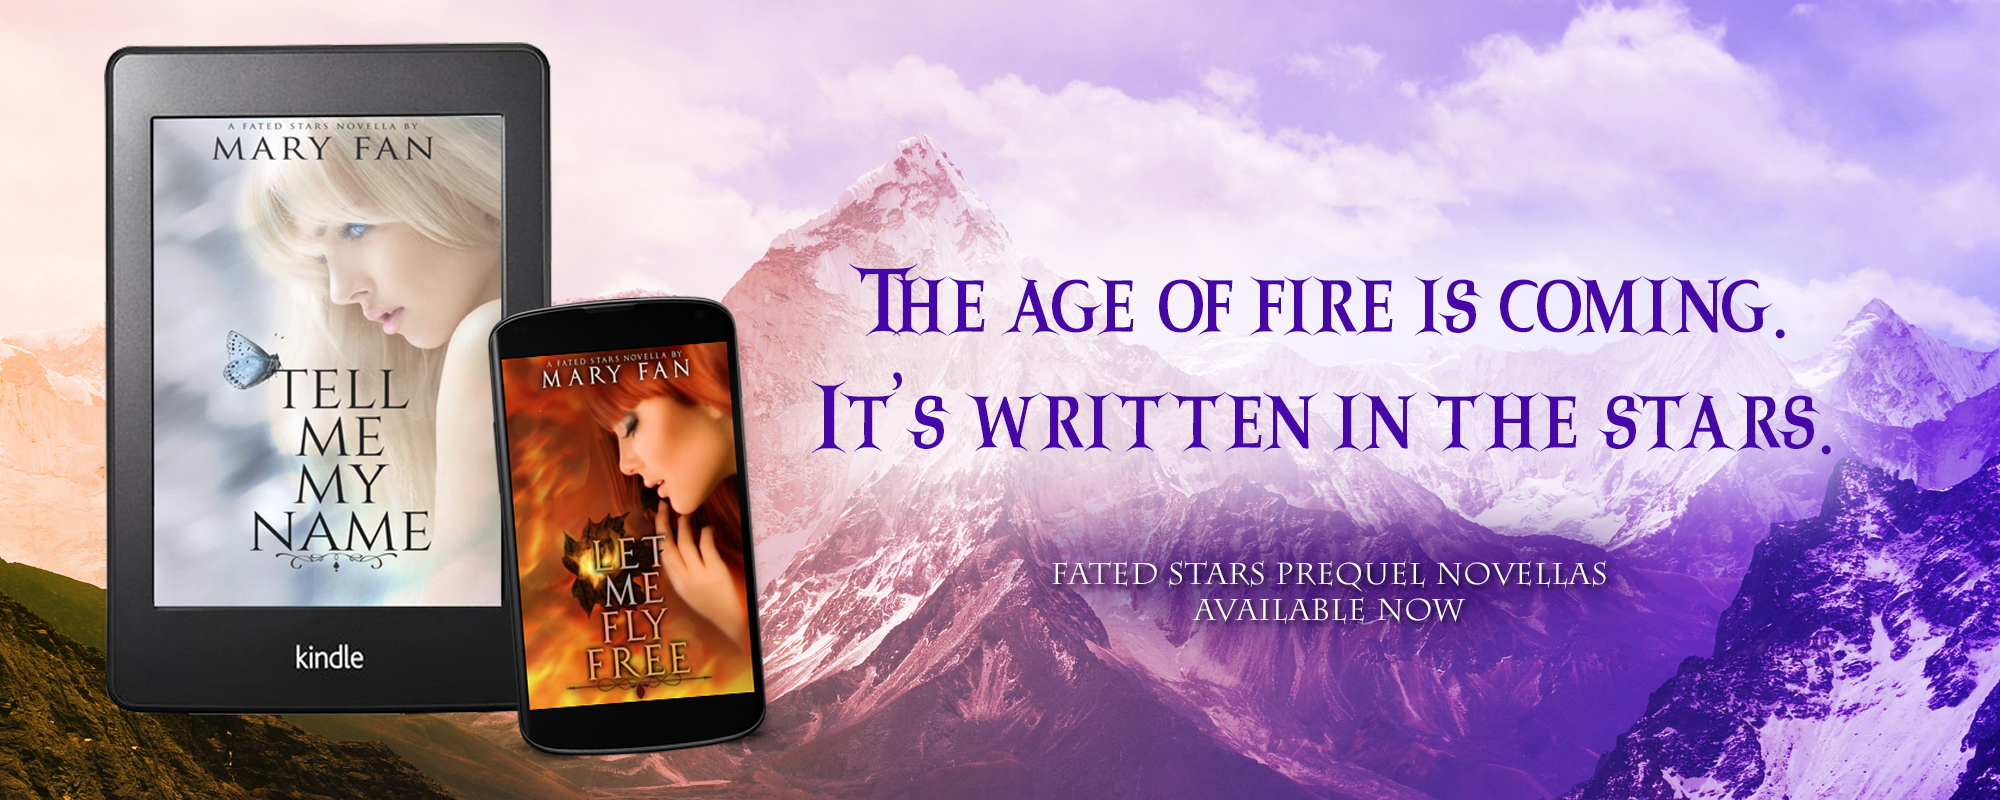 Fated Stars Prequel Novellas available now!